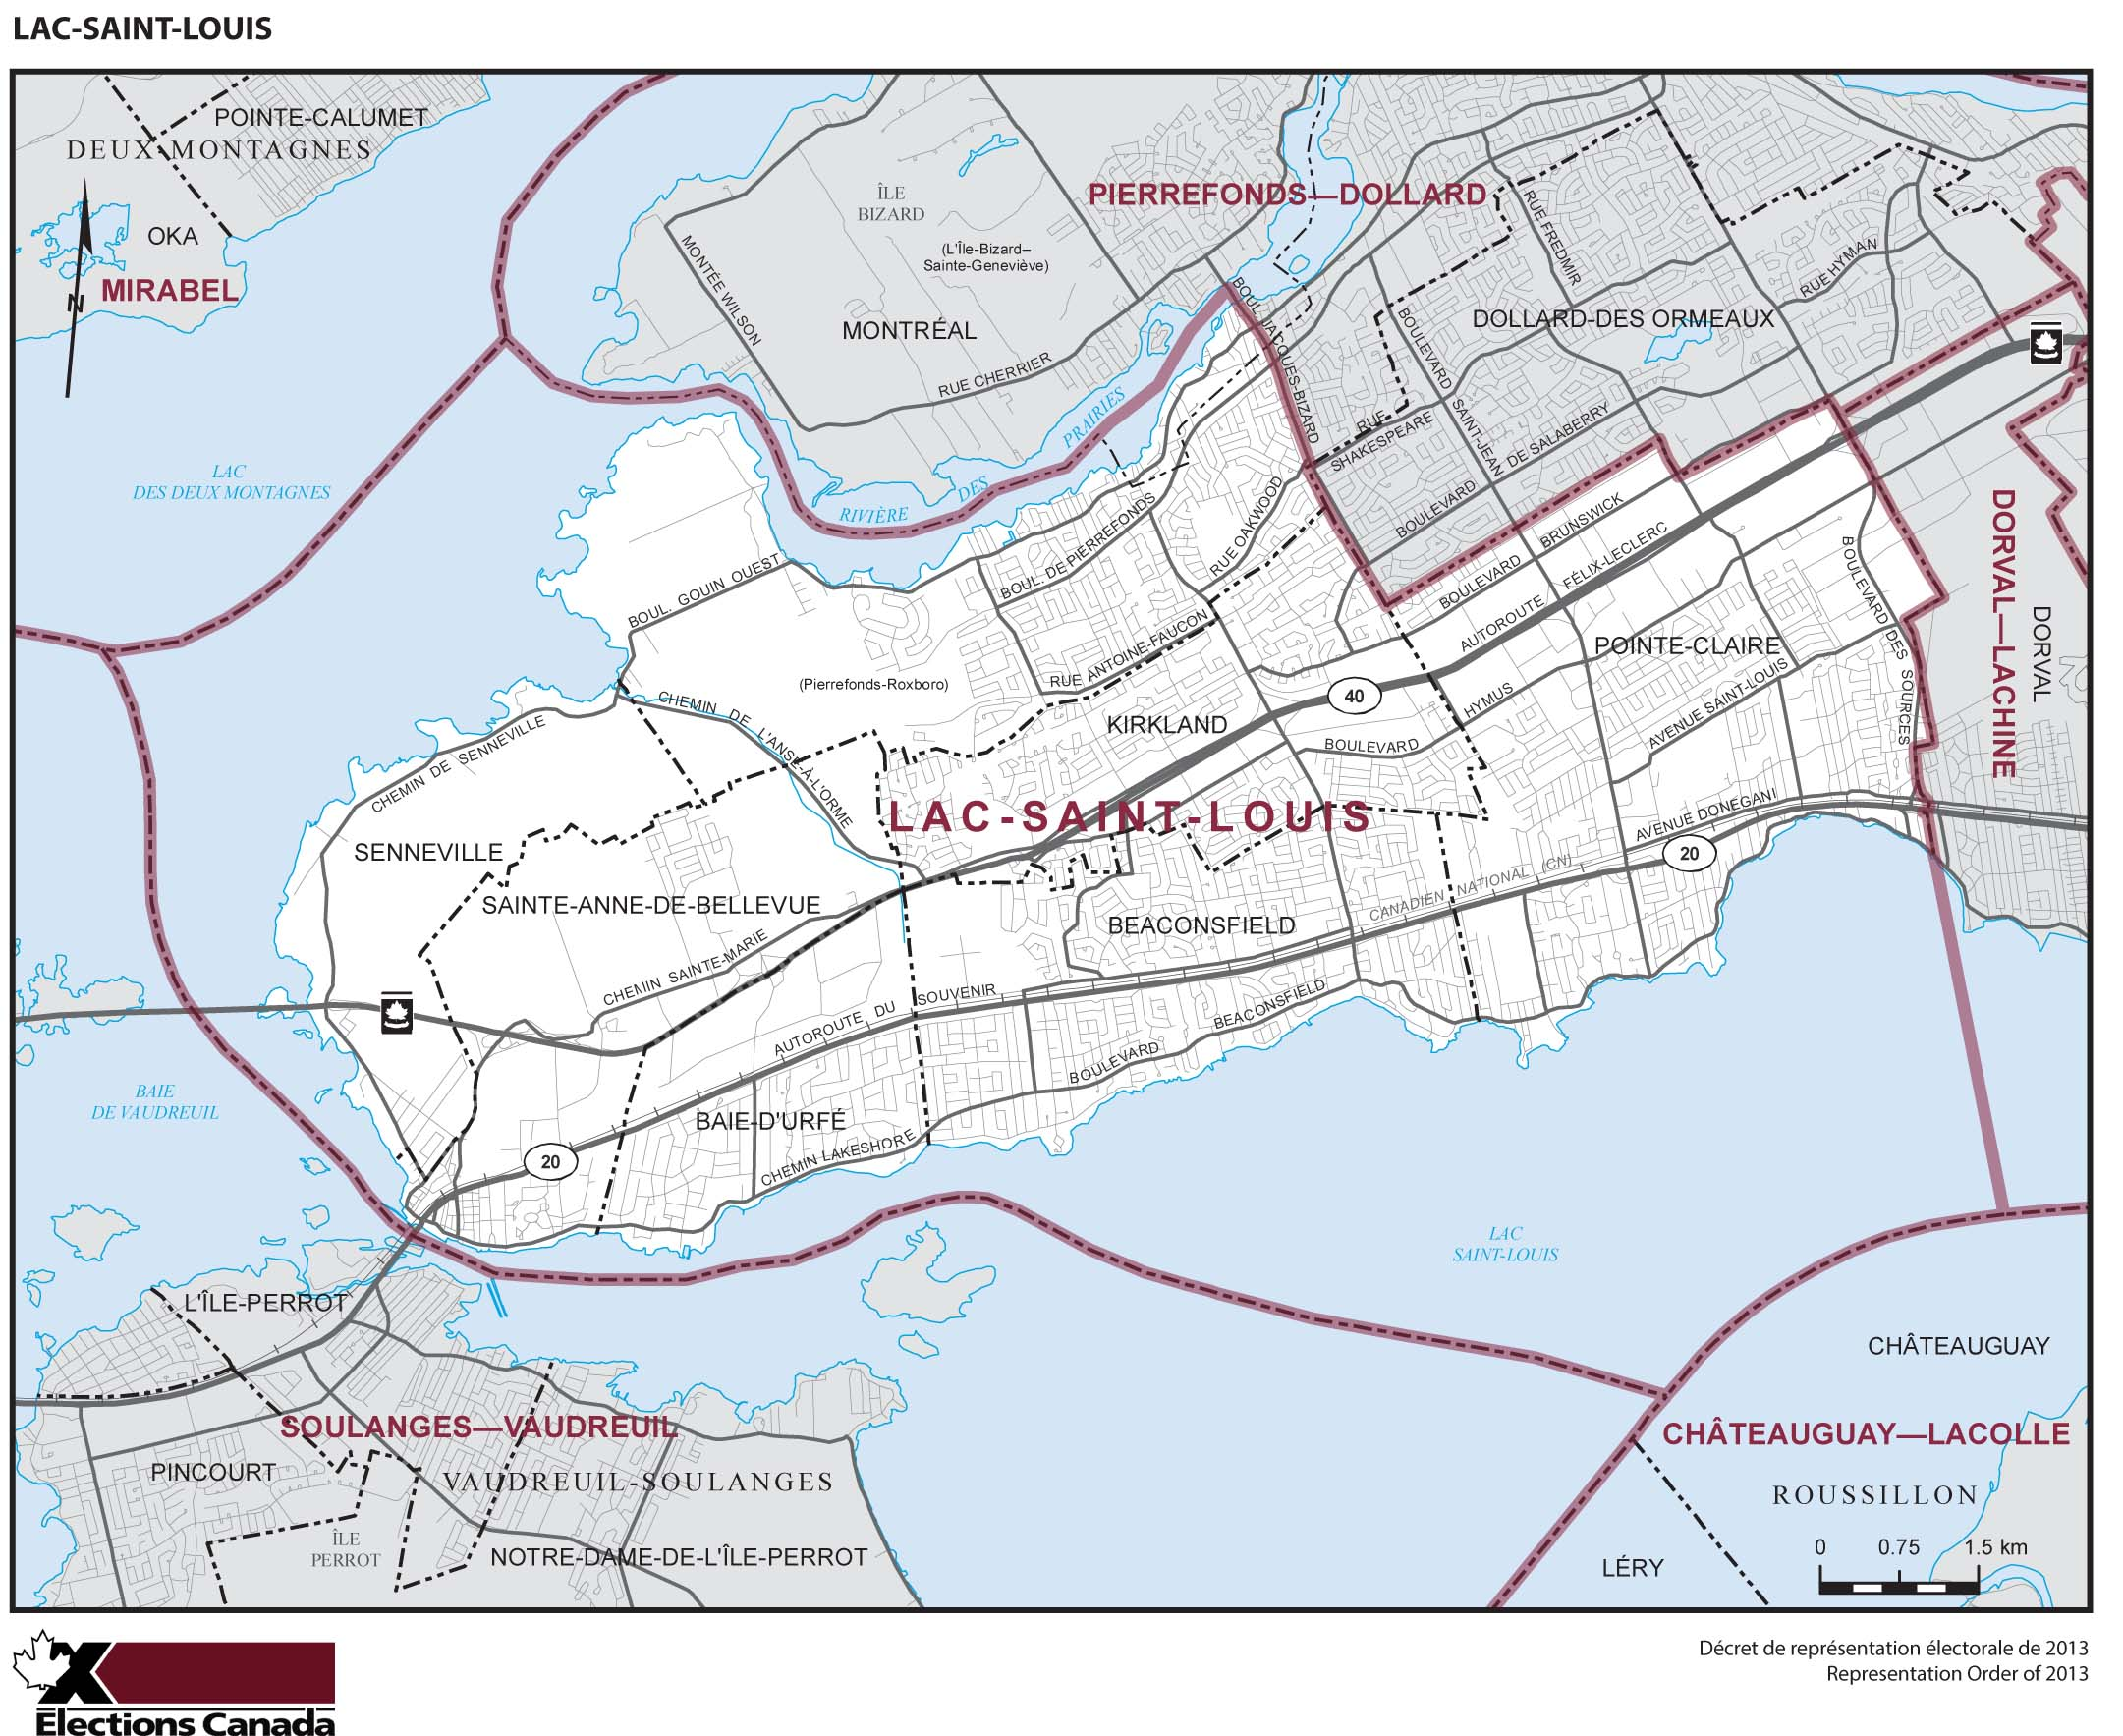 Map: Lac-Saint-Louis, Federal electoral district, 2013 Representation Order (in white), Quebec